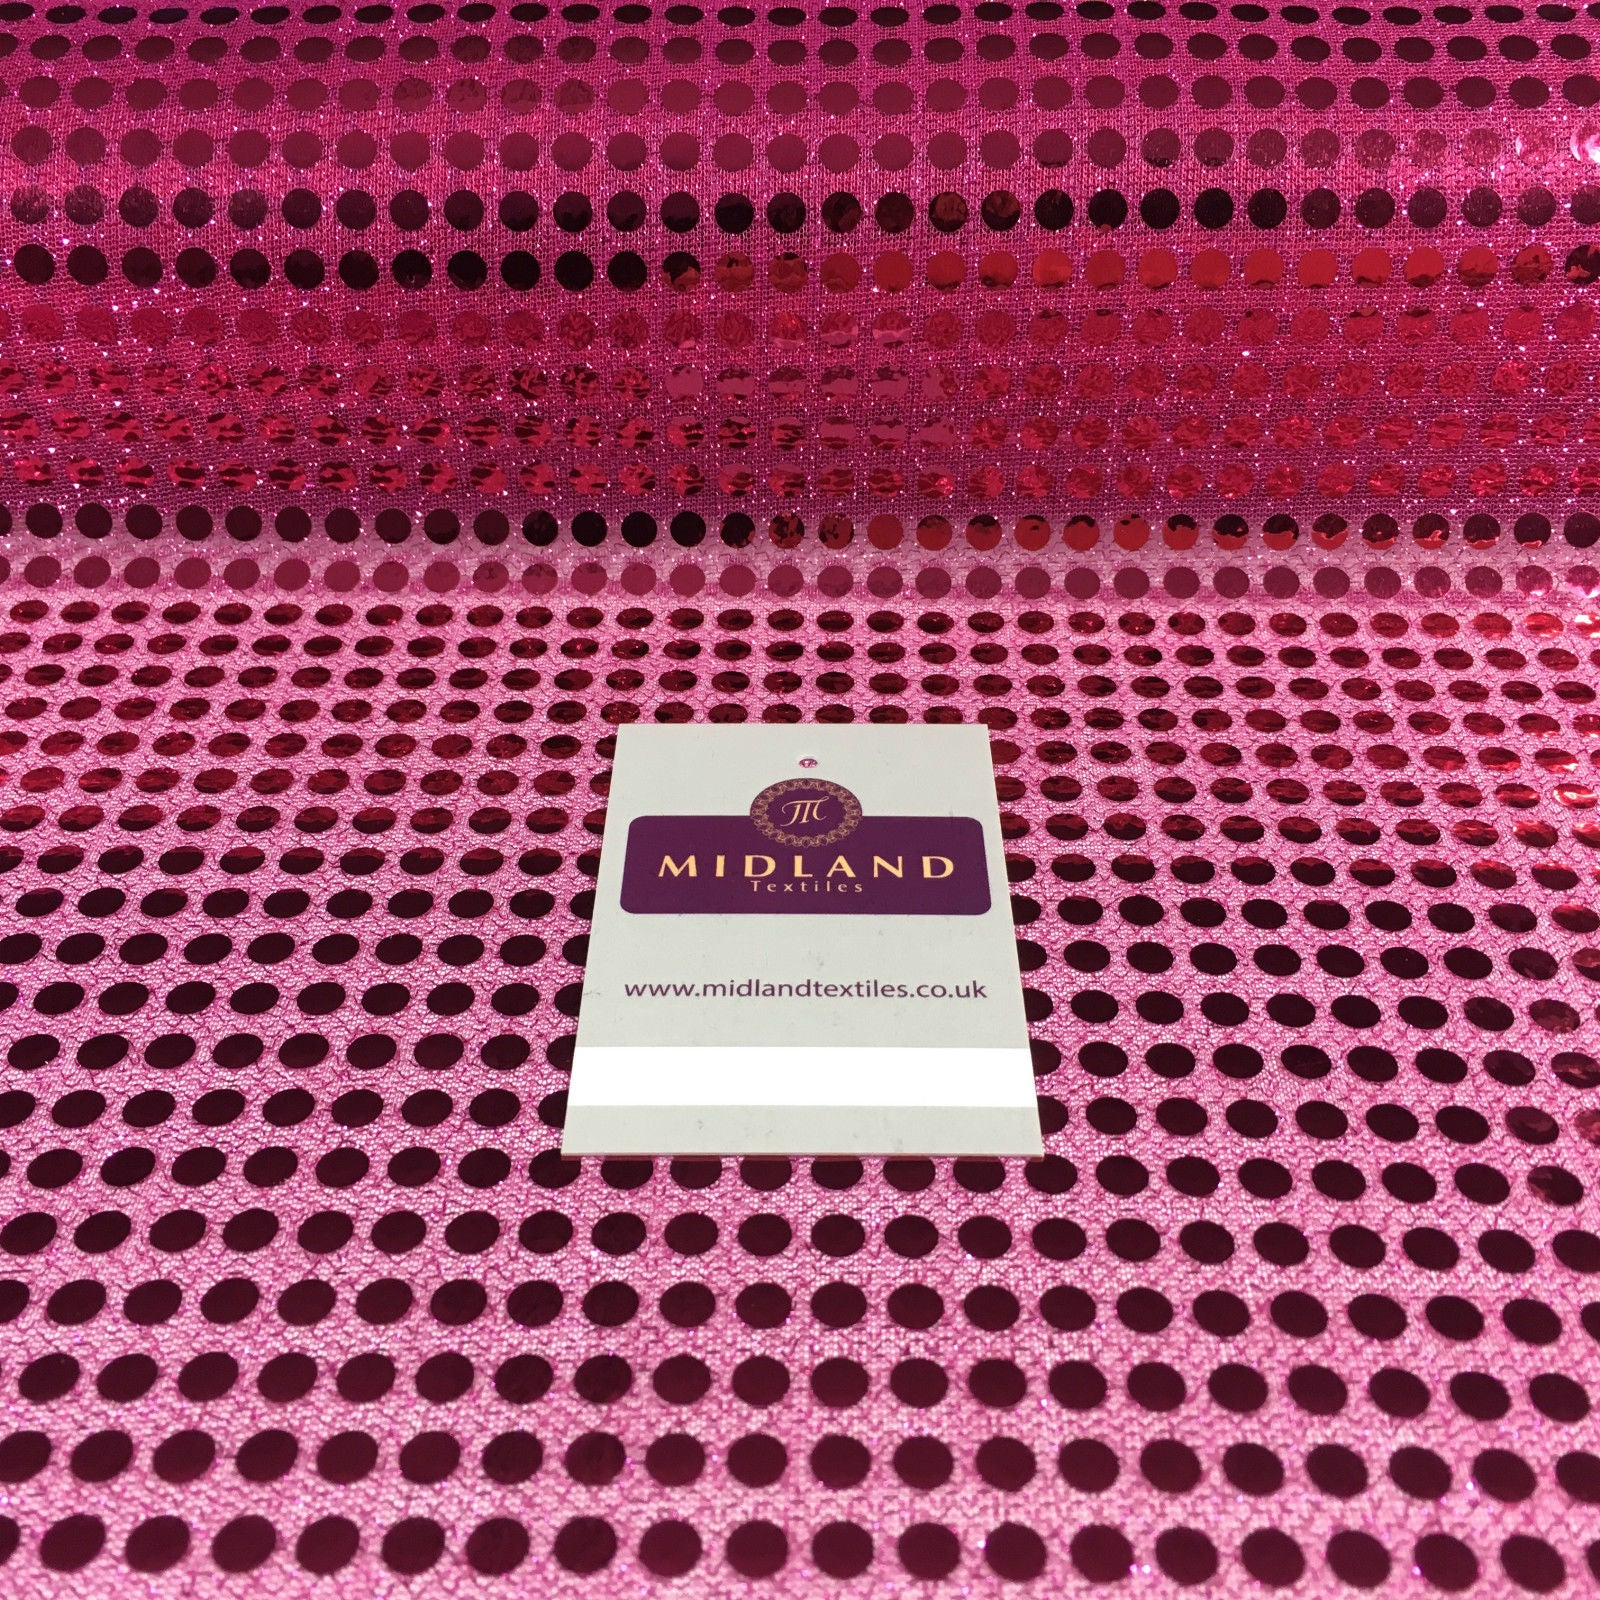 6mm Sequin fabric shiny sparkly material fancy dress costume Per Metre M63 Mtex